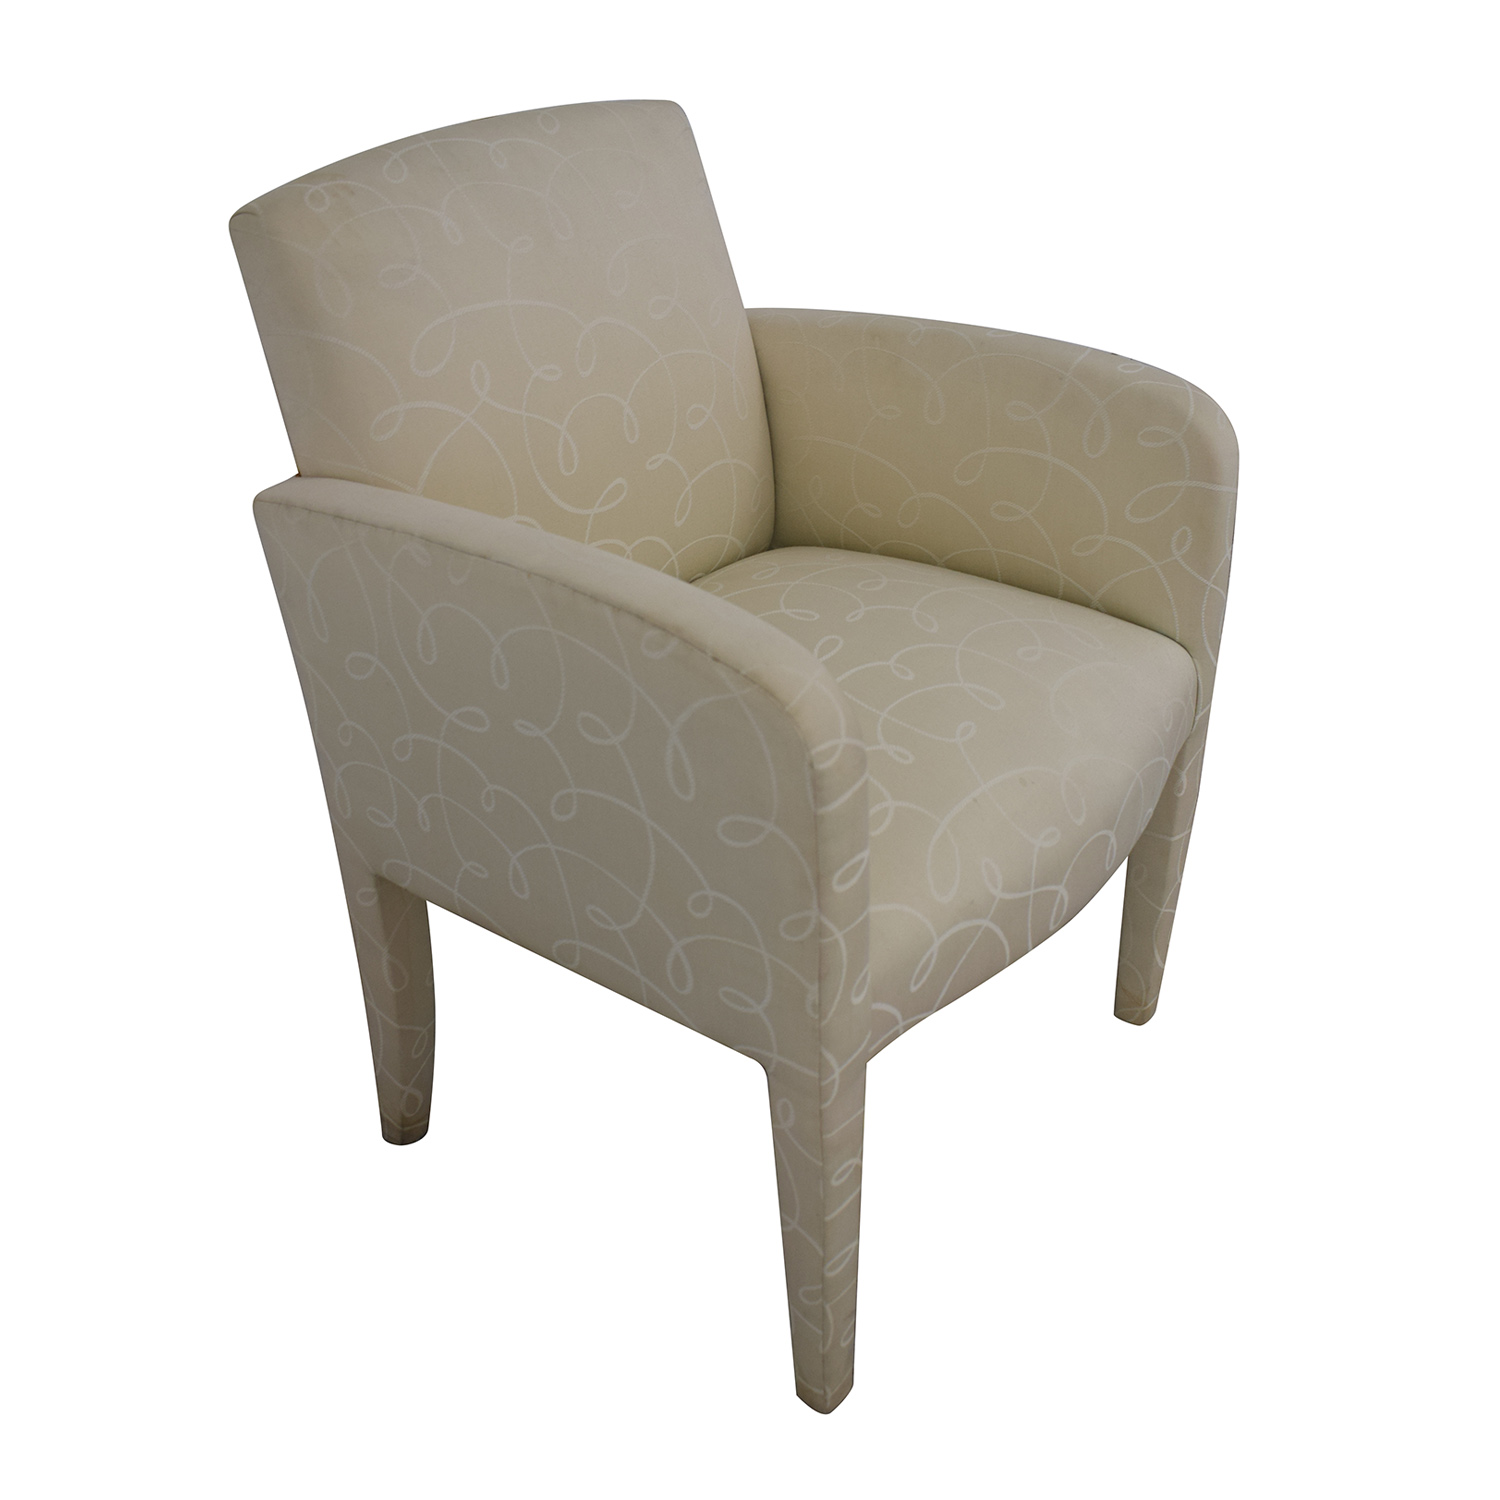 Upholstered Fabric Chair price